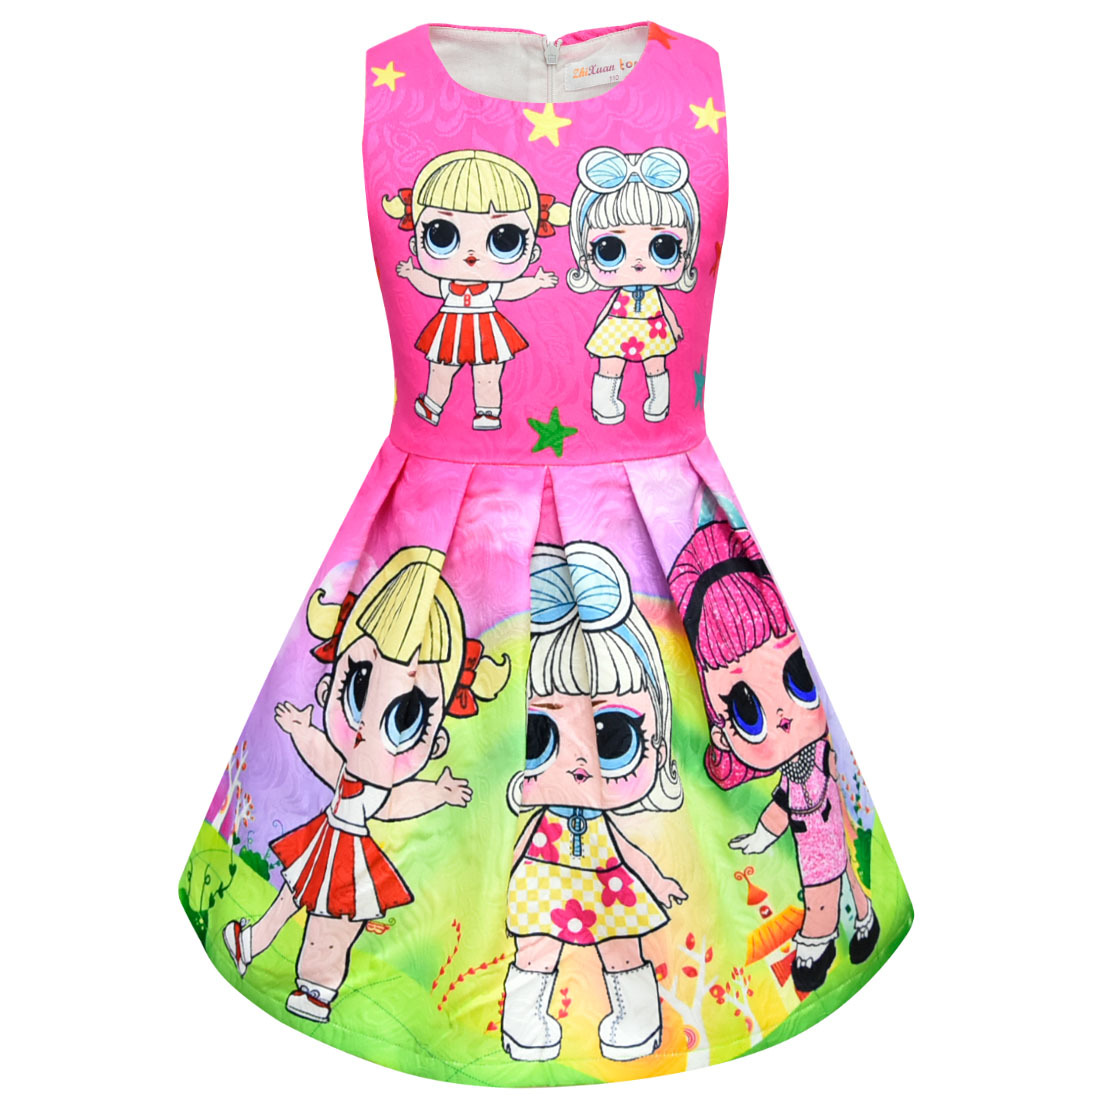 cbfd3b953 Lol Dolls Baby Dresses 2018 Summer Cute Elegant Dress Kids Party ...